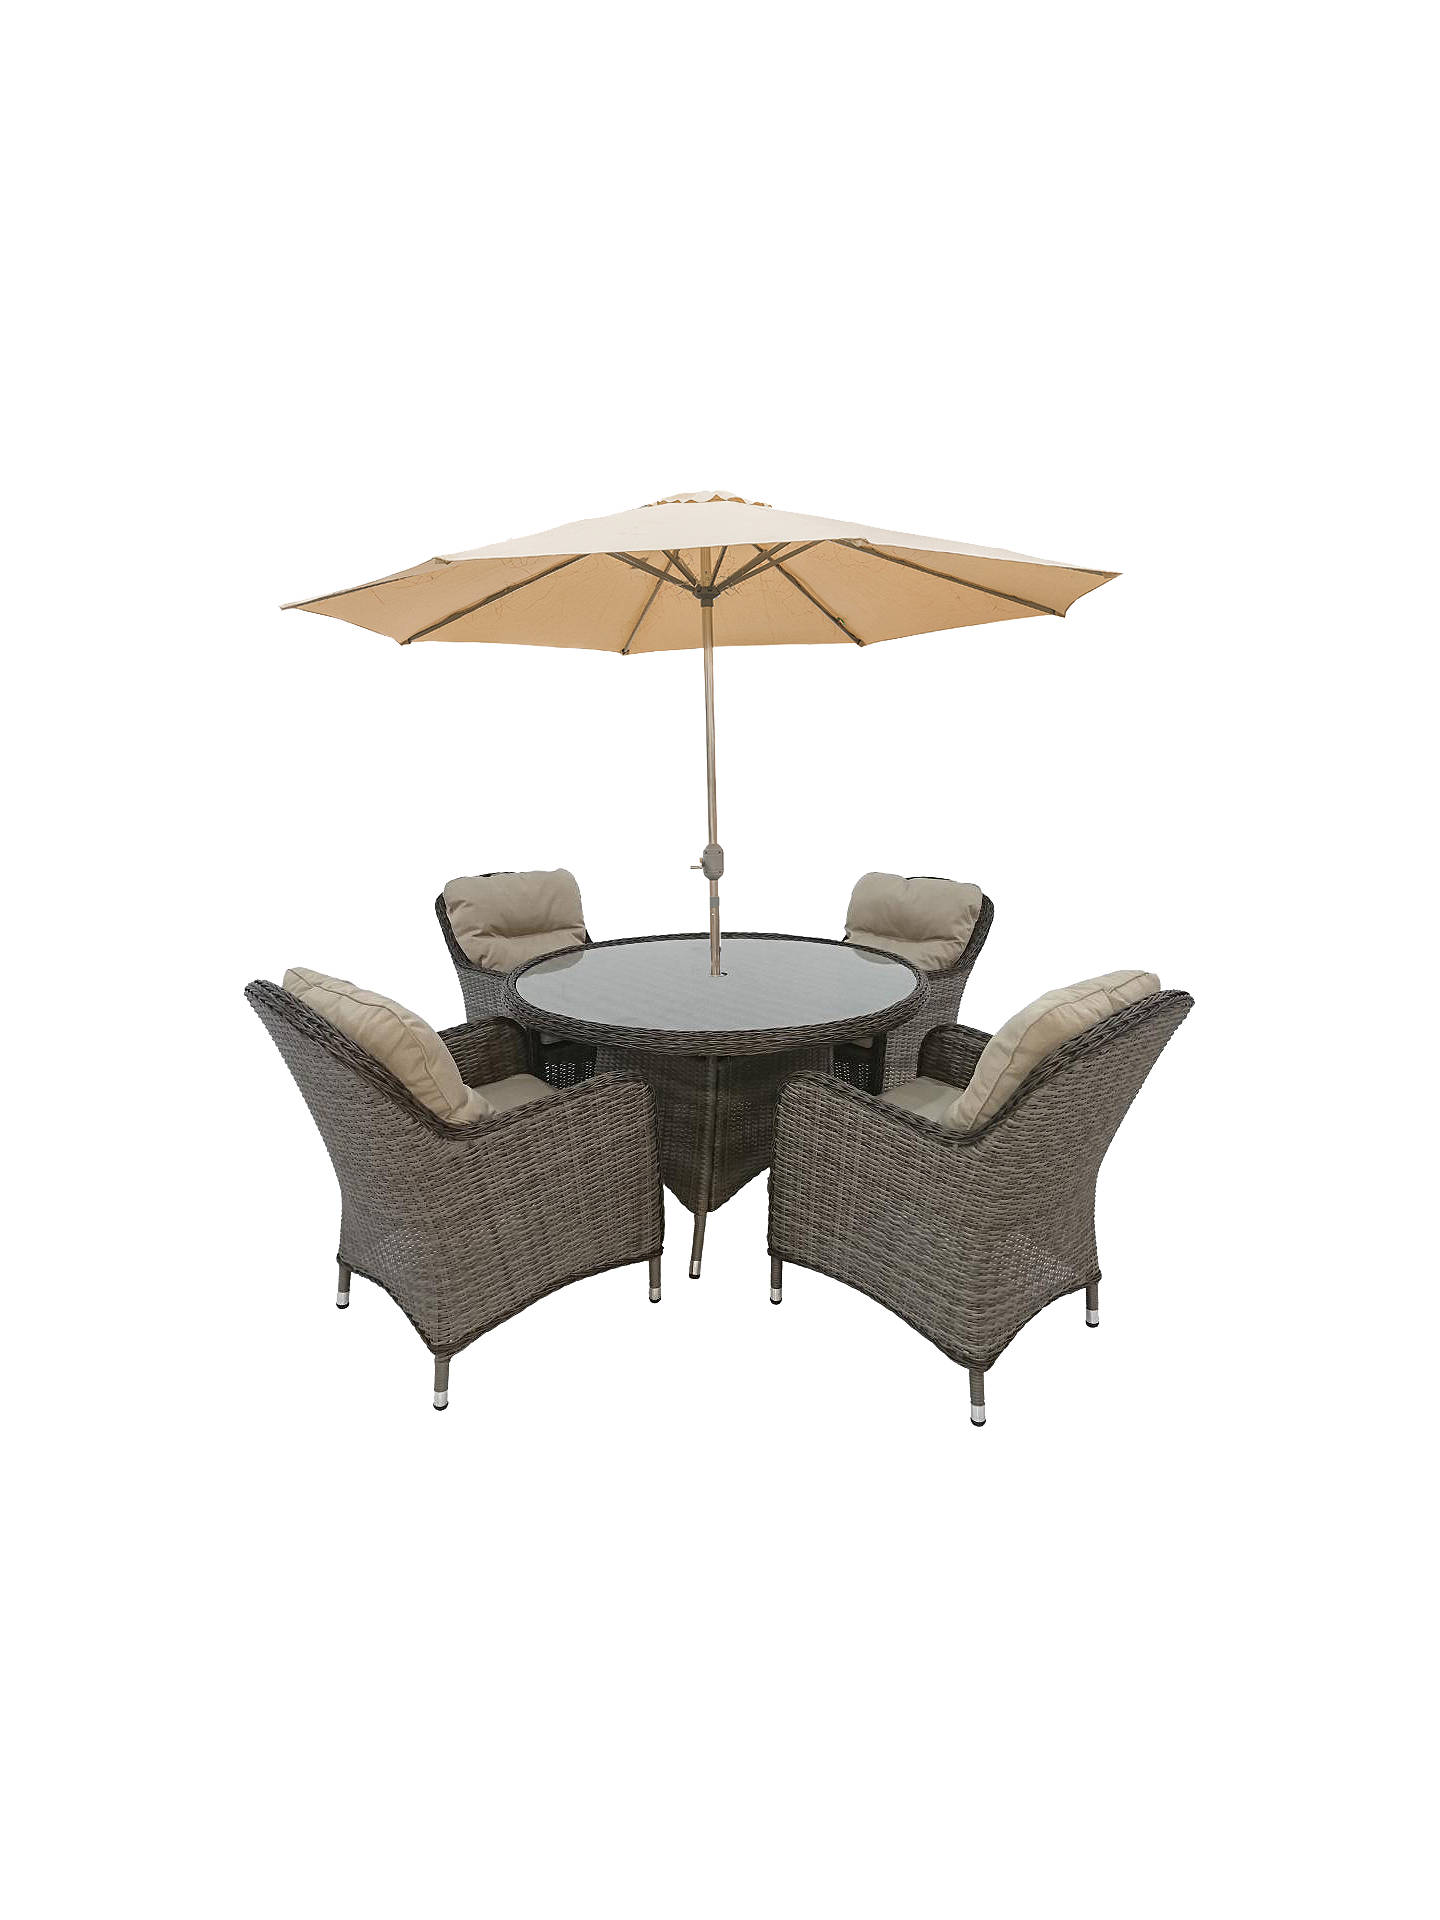 Buylg outdoor marseille 4 seater garden dining table and chairs set with parasol natural online